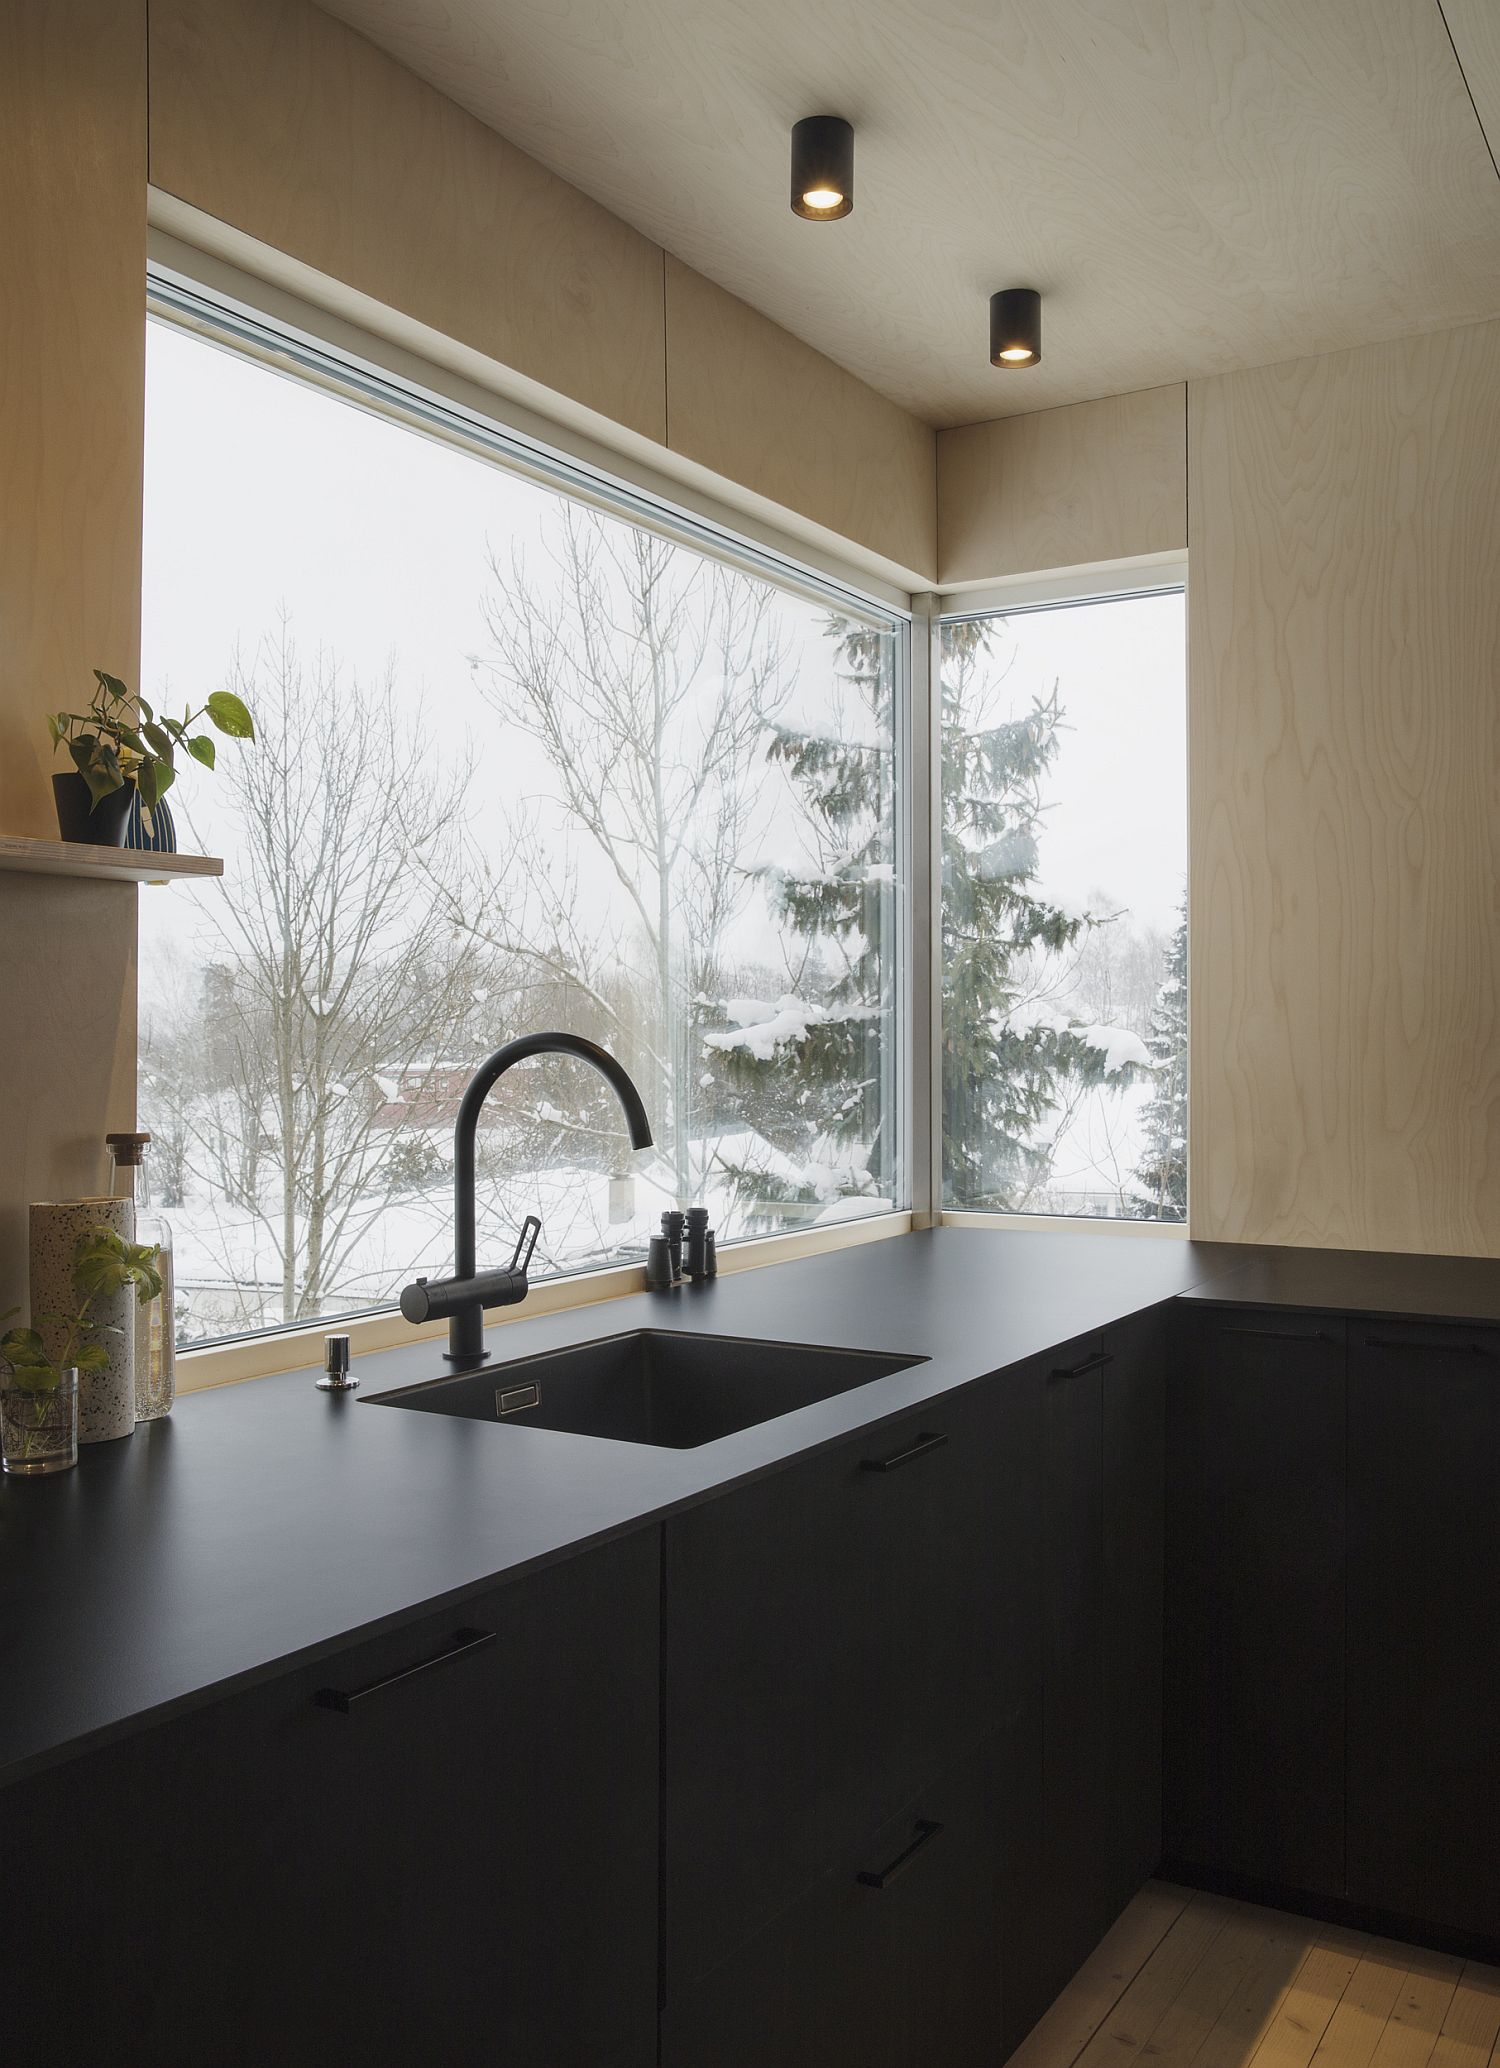 Corner window in the kitchen brings in ample natural light